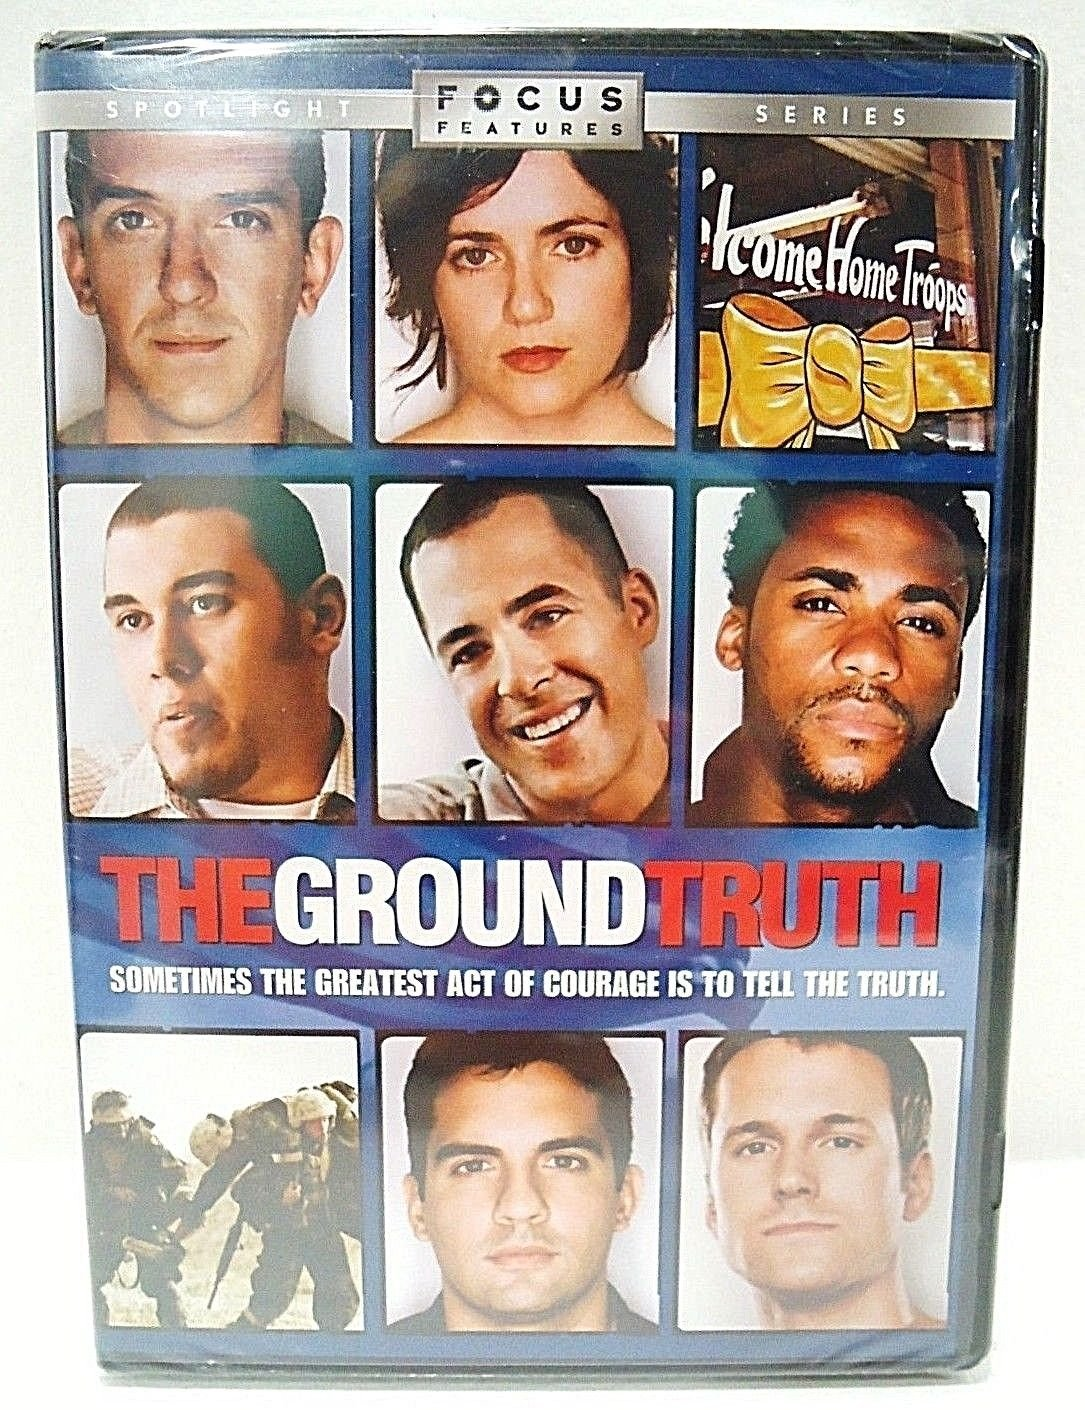 THE GROUND TRUTH - DVD - NEW - IRAQ - WAR - VETERAN - SOLDIER - MILITARY - MOVIE